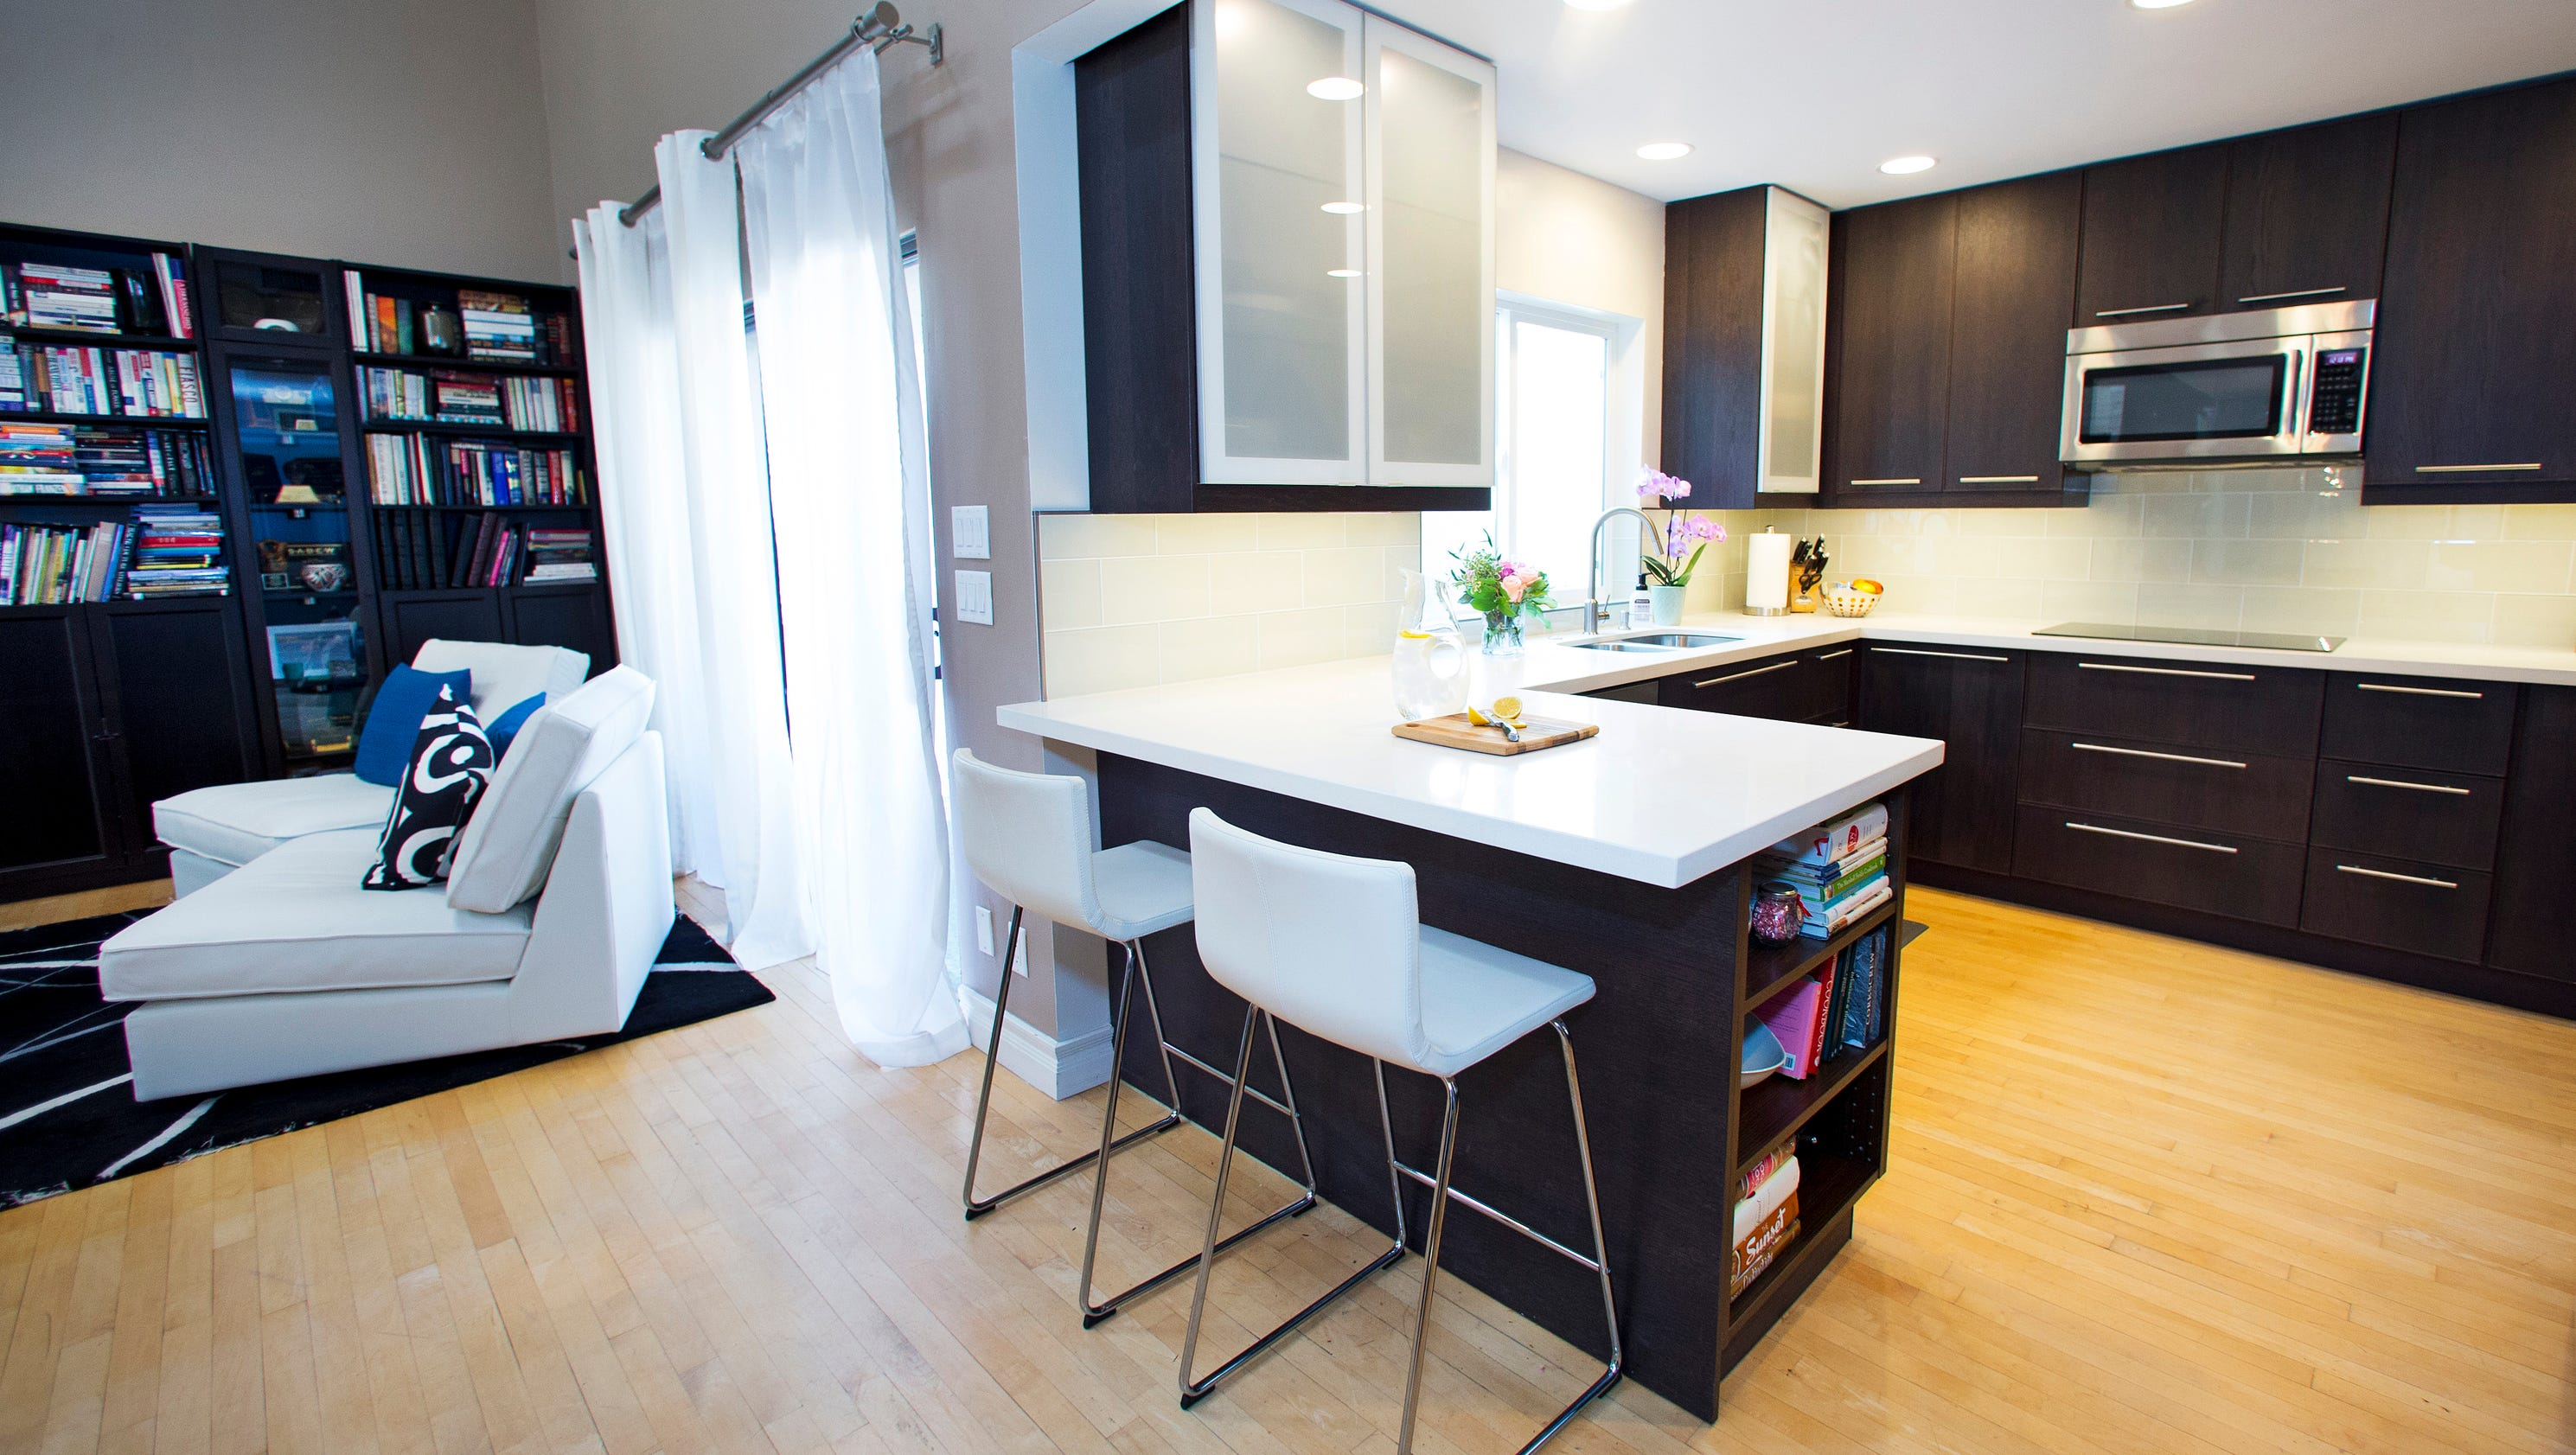 2 Bedroom Apartments In Phoenix I Spent 35 000 Remodeling My Kitchen And Here Are 10 Big